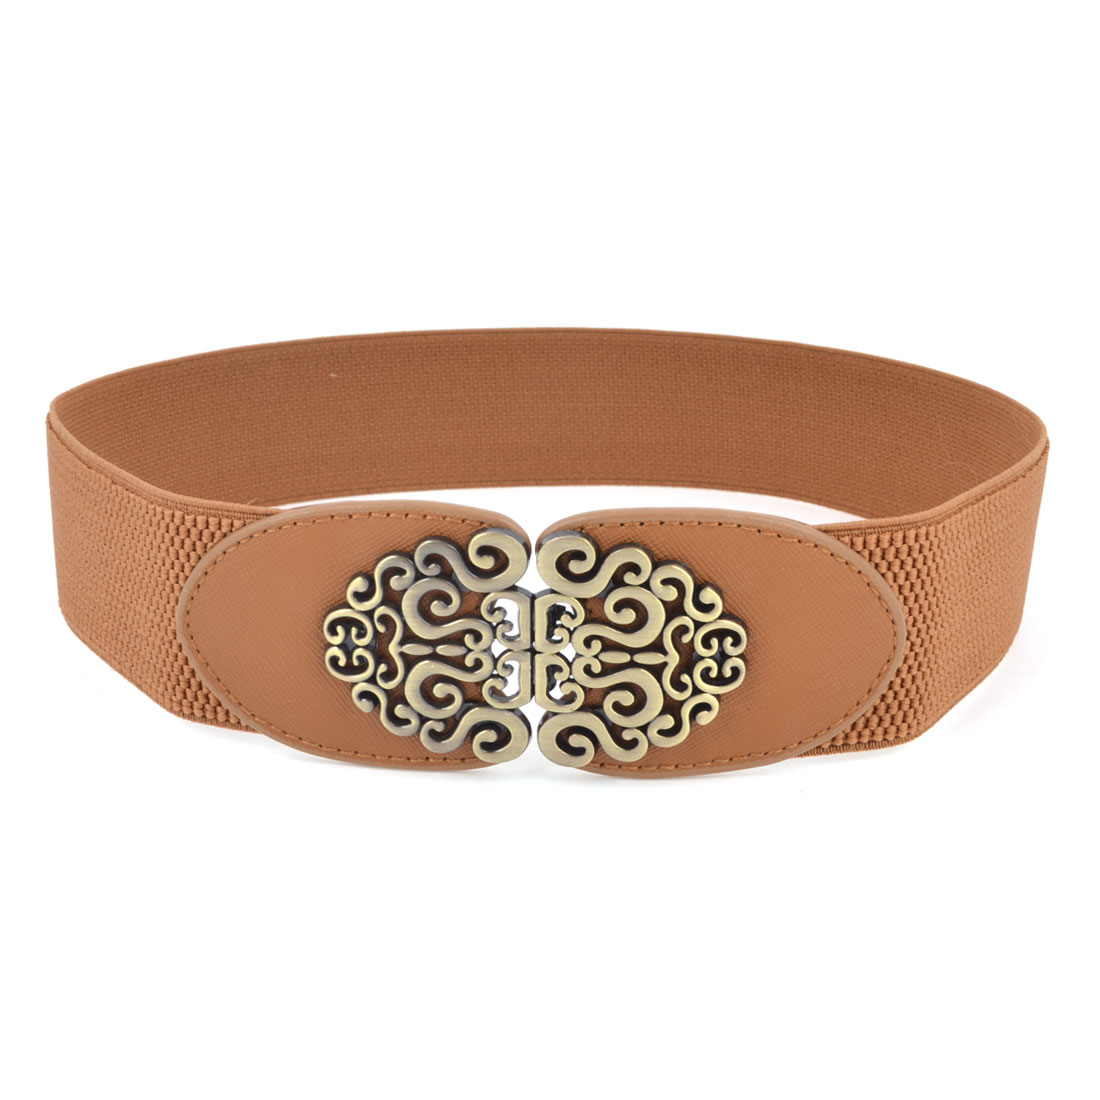 Ellipse Shape Metal Interlocking Buckle Stretchy Band Cinch Belt Brown for Lady